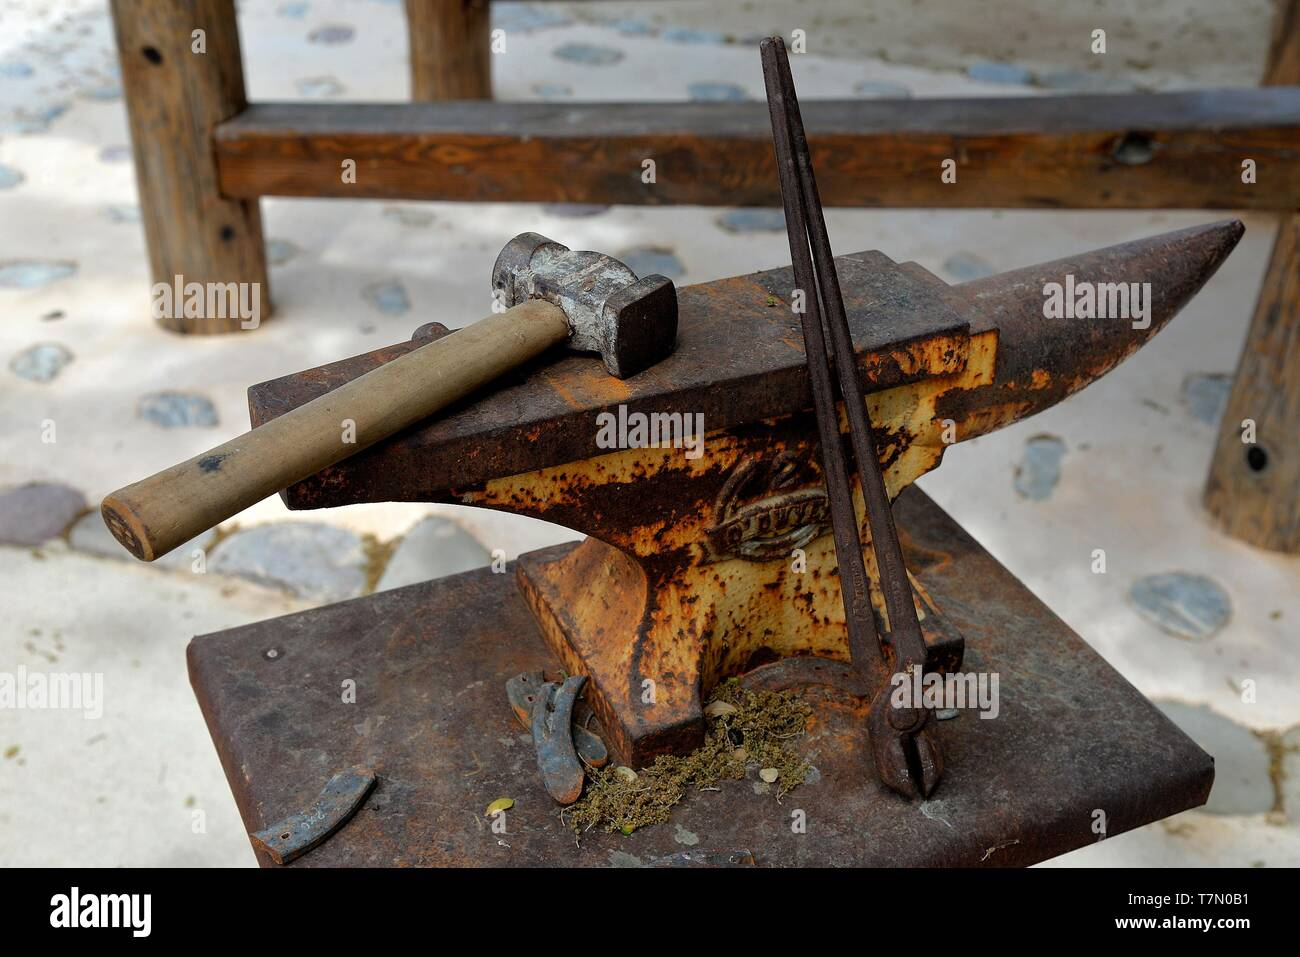 Anvil And Hammer Stock Photos & Anvil And Hammer Stock Images - Alamy